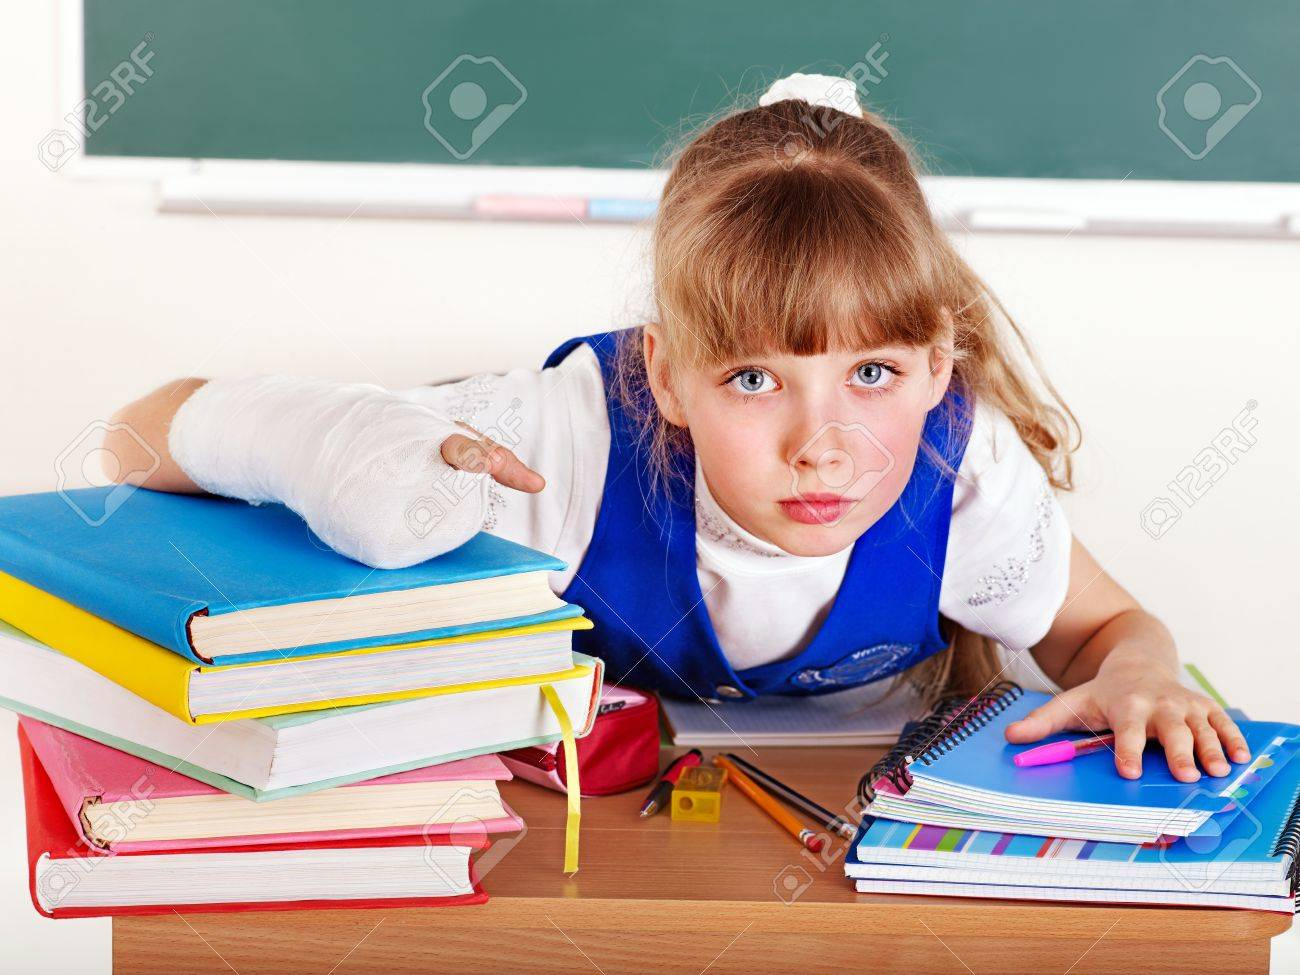 Disabled child with broken arm in classroom. Stock Photo - 13852011